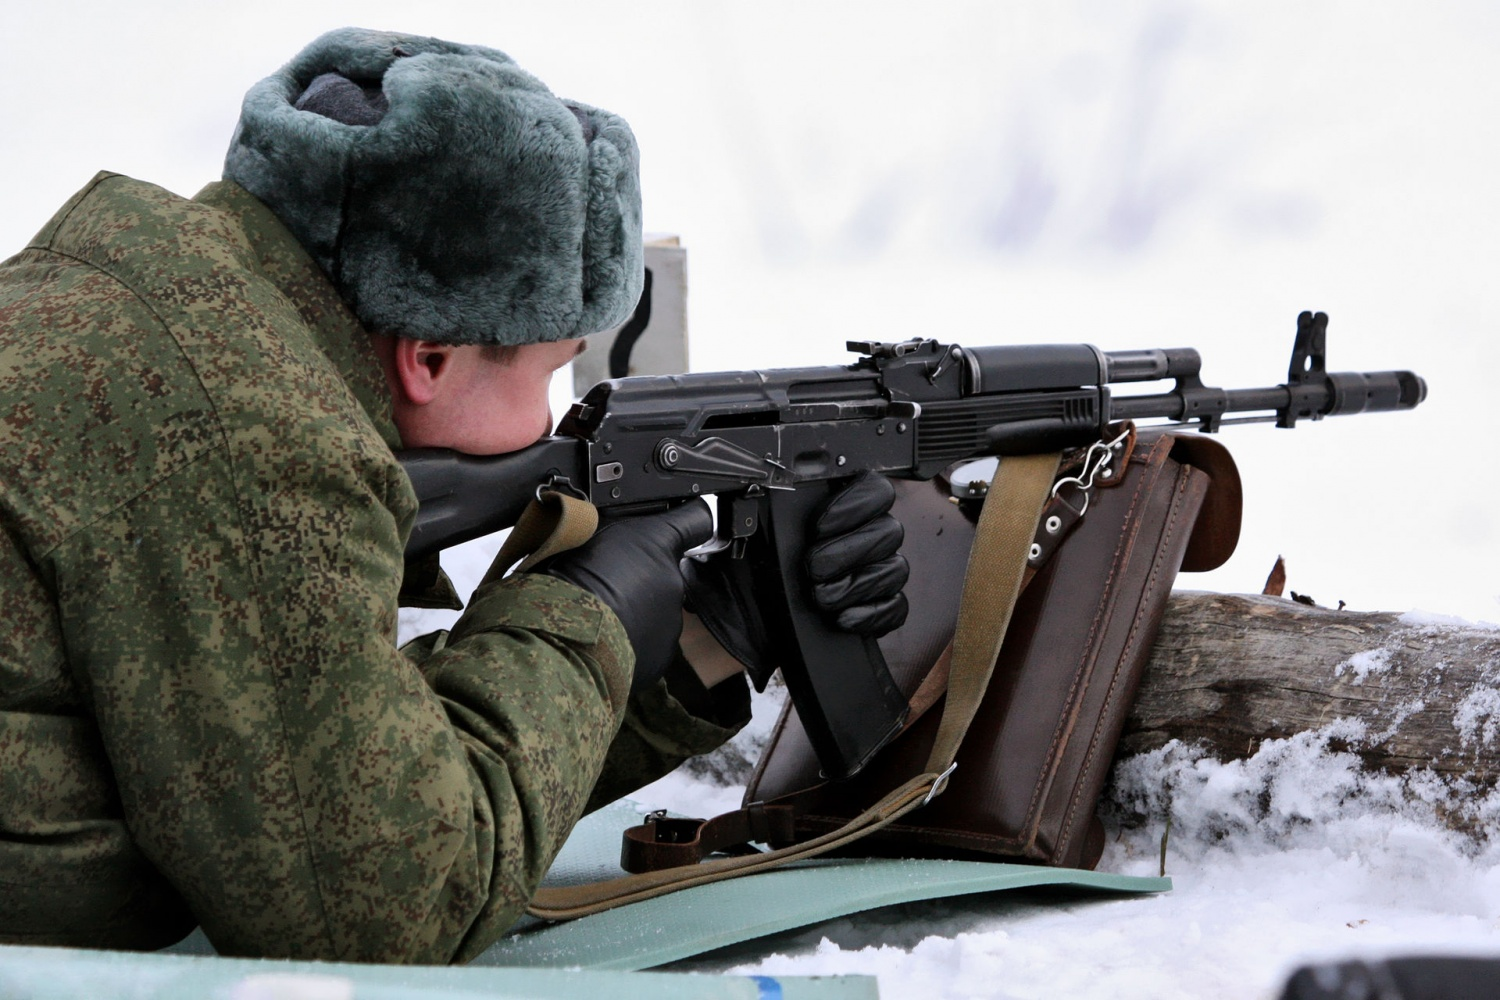 Russian Soldiers Report Issues with Ammo - The Firearm ...